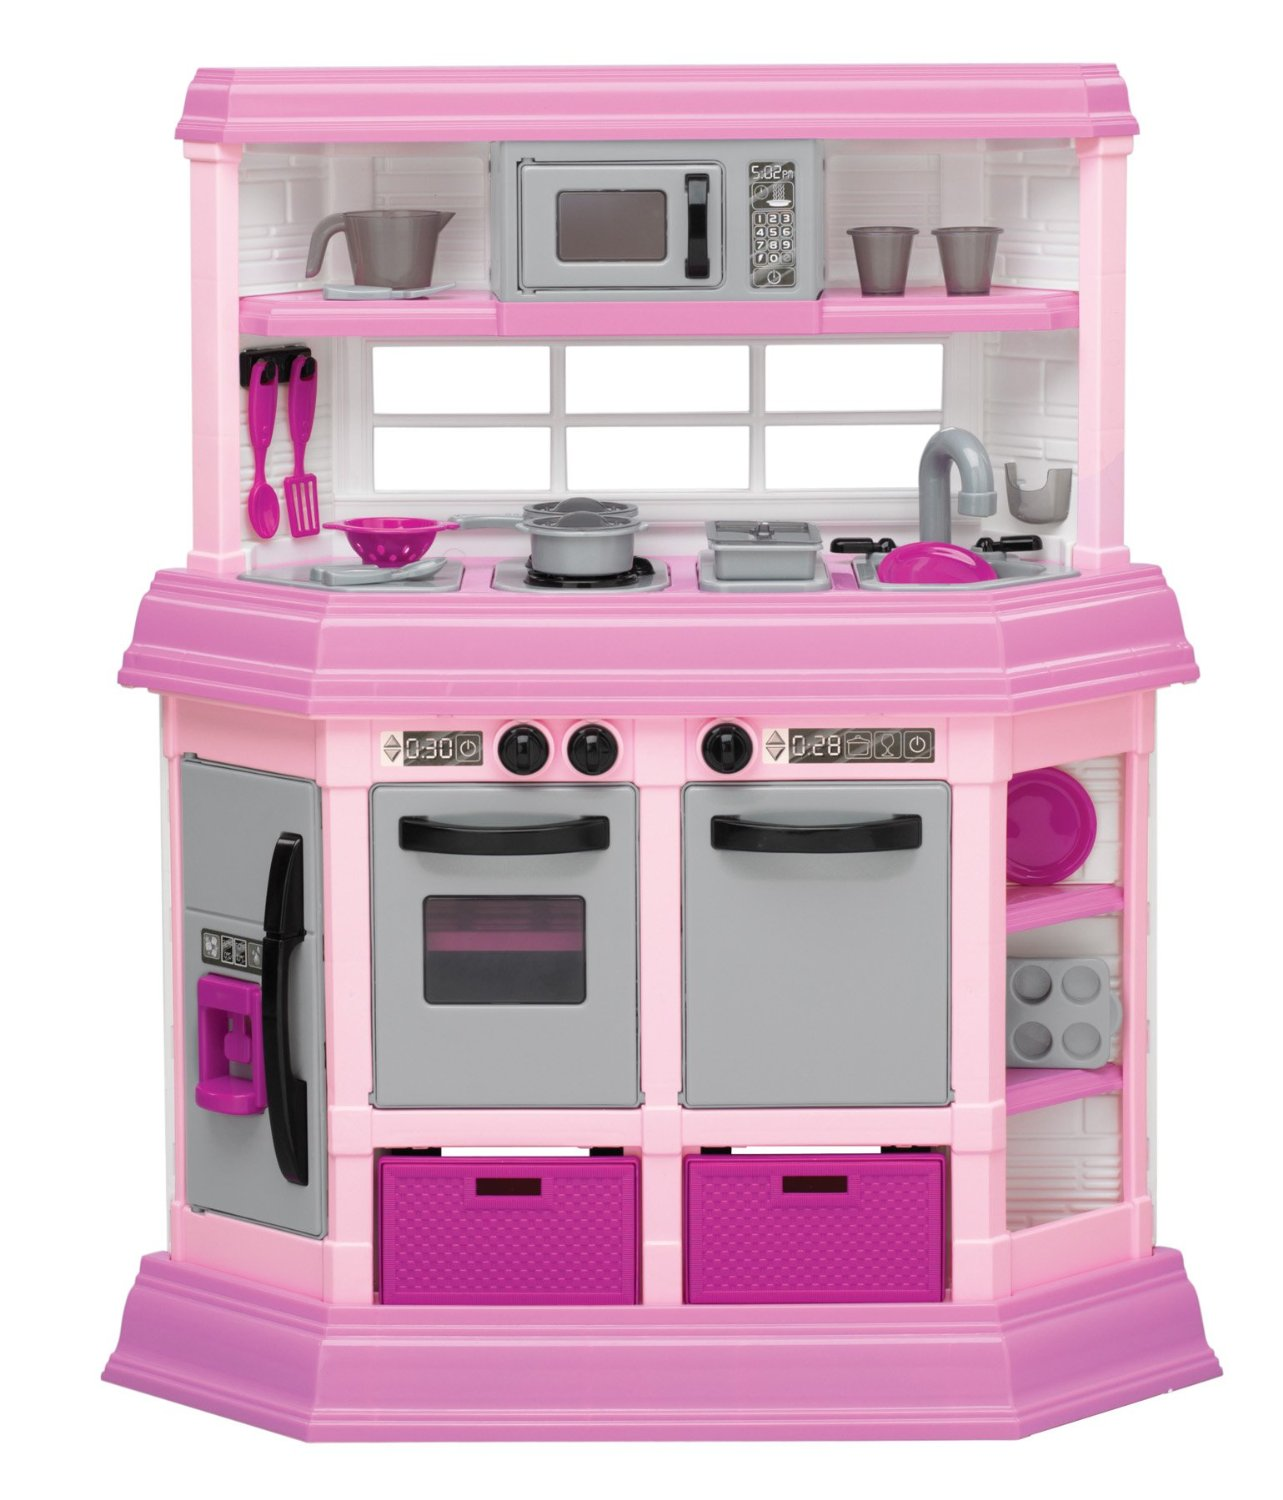 American plastic toy deluxe custom kitchen review for Kitchen set for 9 year old